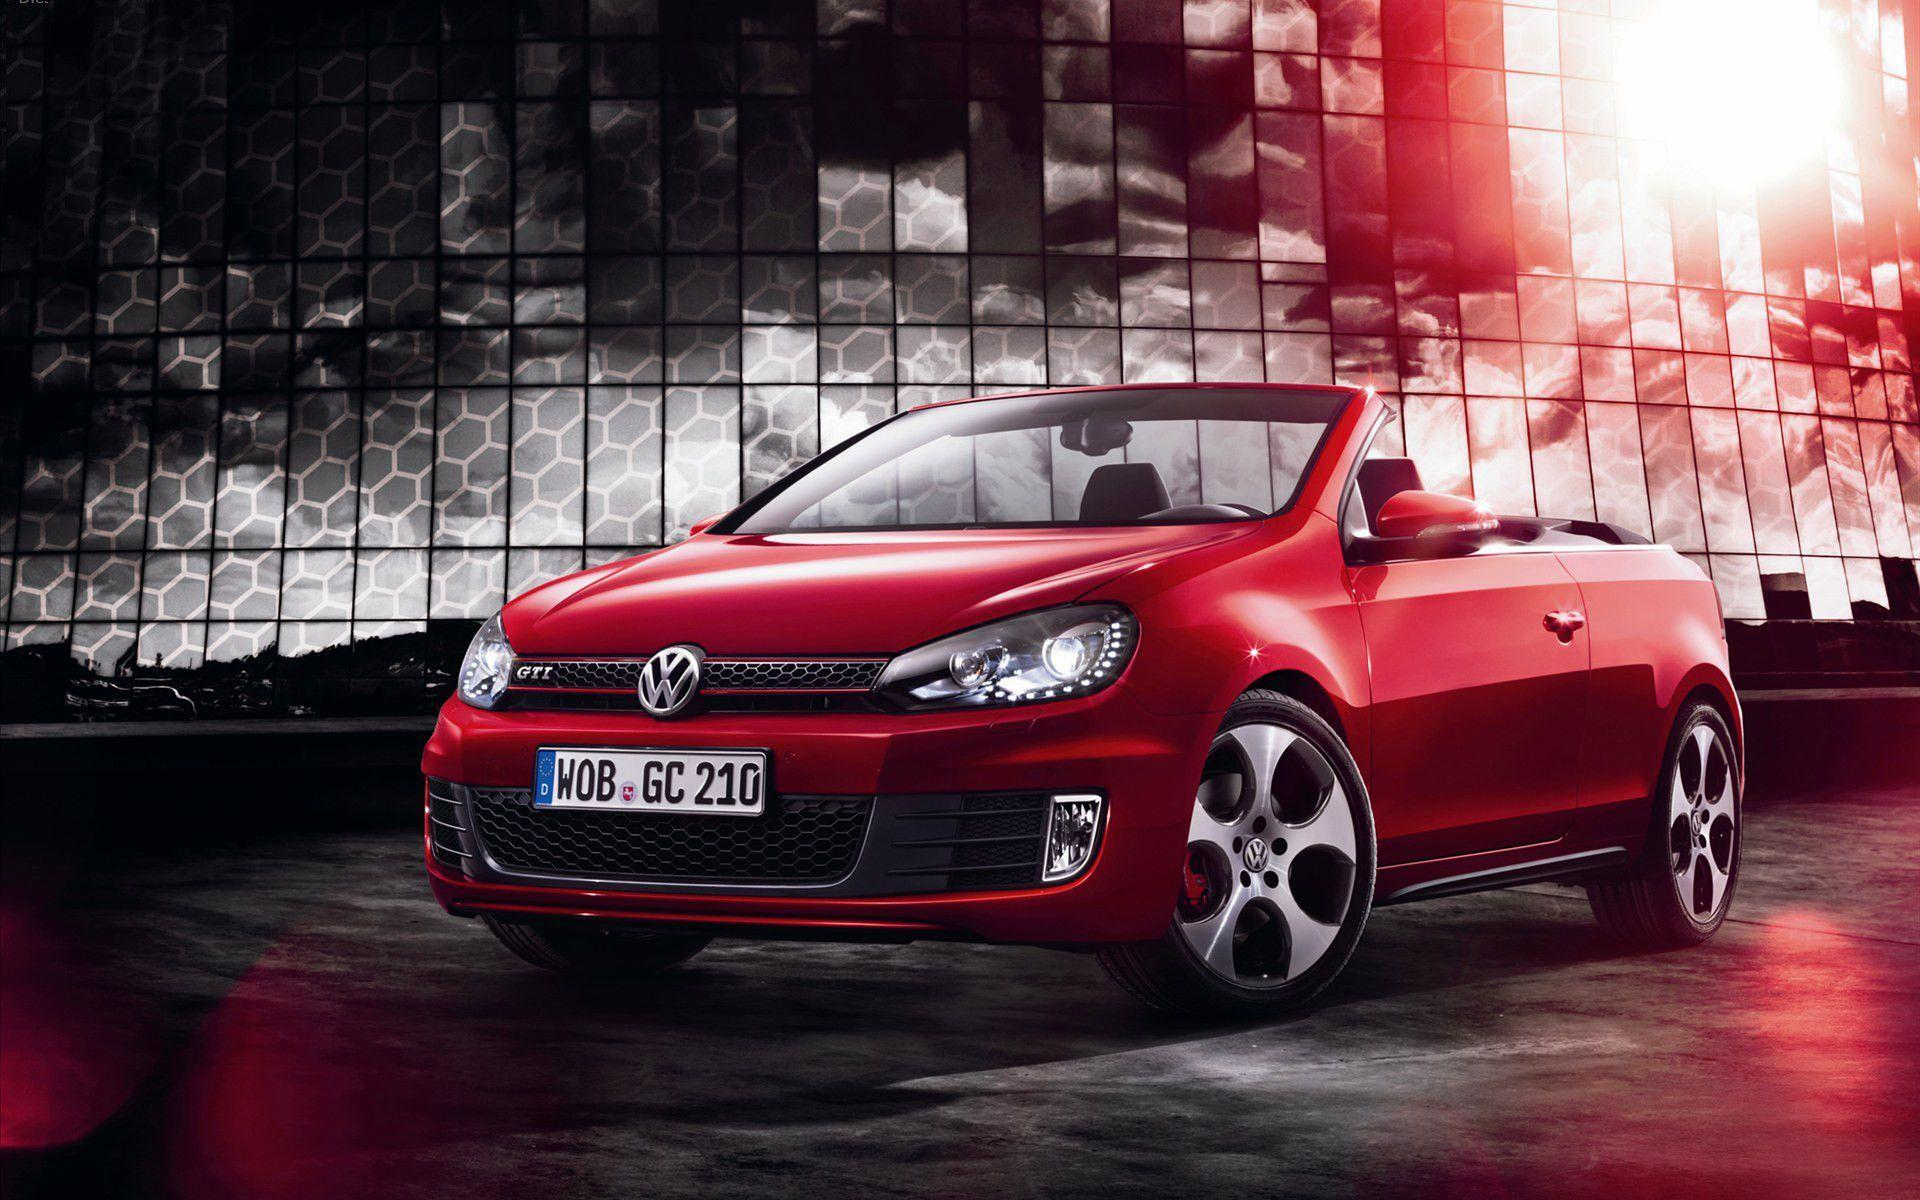 2013 Volkswagen Golf GTI Cabriolet Wallpaper